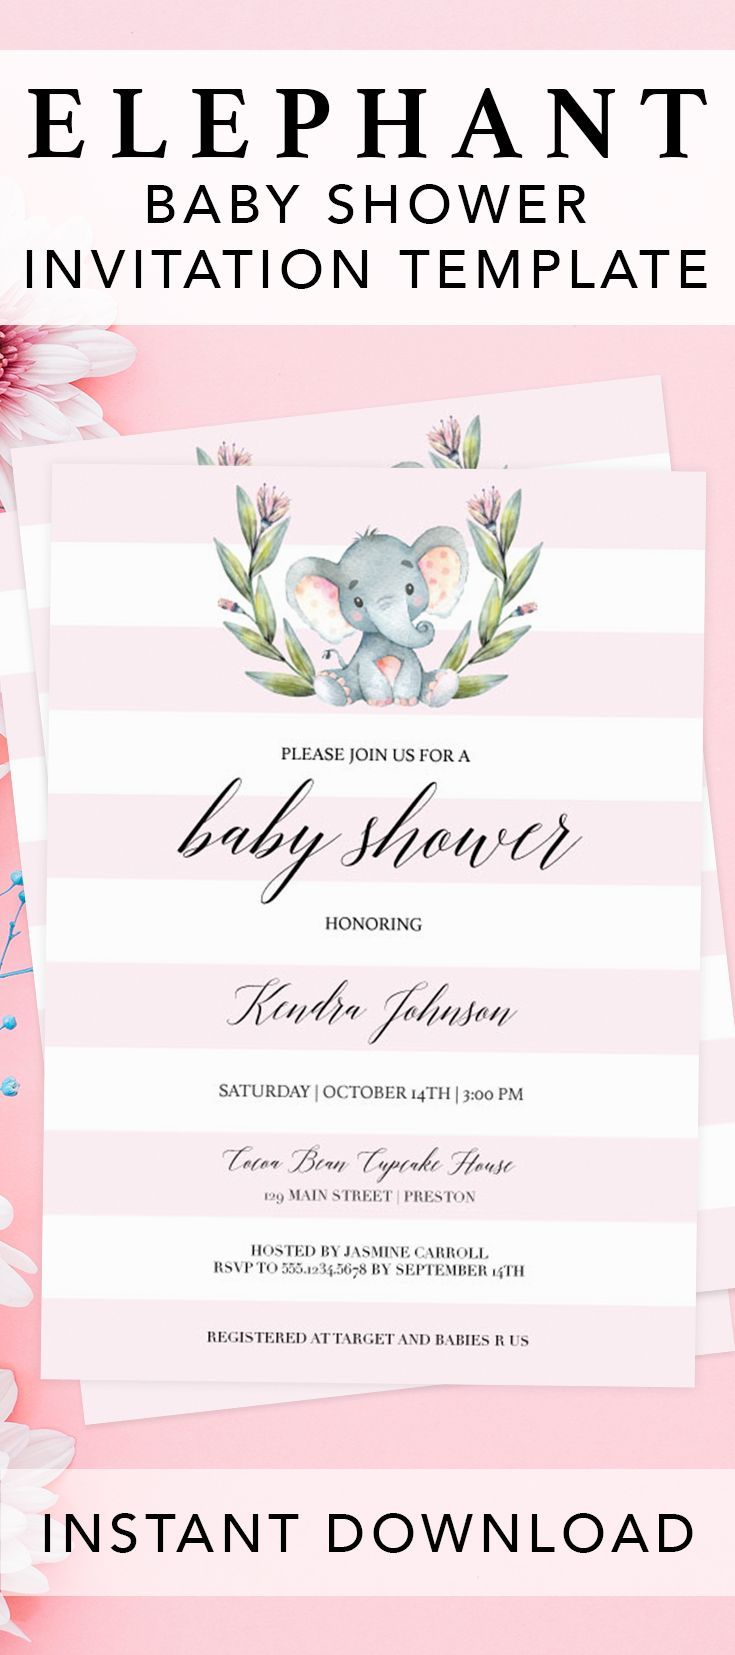 Pink elephant baby shower invitation by LittleSizzle. Click through to create your own girl baby shower invitation or re-pin for later. Make the perfect announcement of your elephant themed baby shower with this pink elephant baby shower invite for girls. This printable invitation template is an instant download, so simply download, edit and print in just minutes! Make it a fun and easy DIY project. #babyshowerideas #babyshowerinvitations #girlbabyshower #pink #girl #elephant #printable #diy